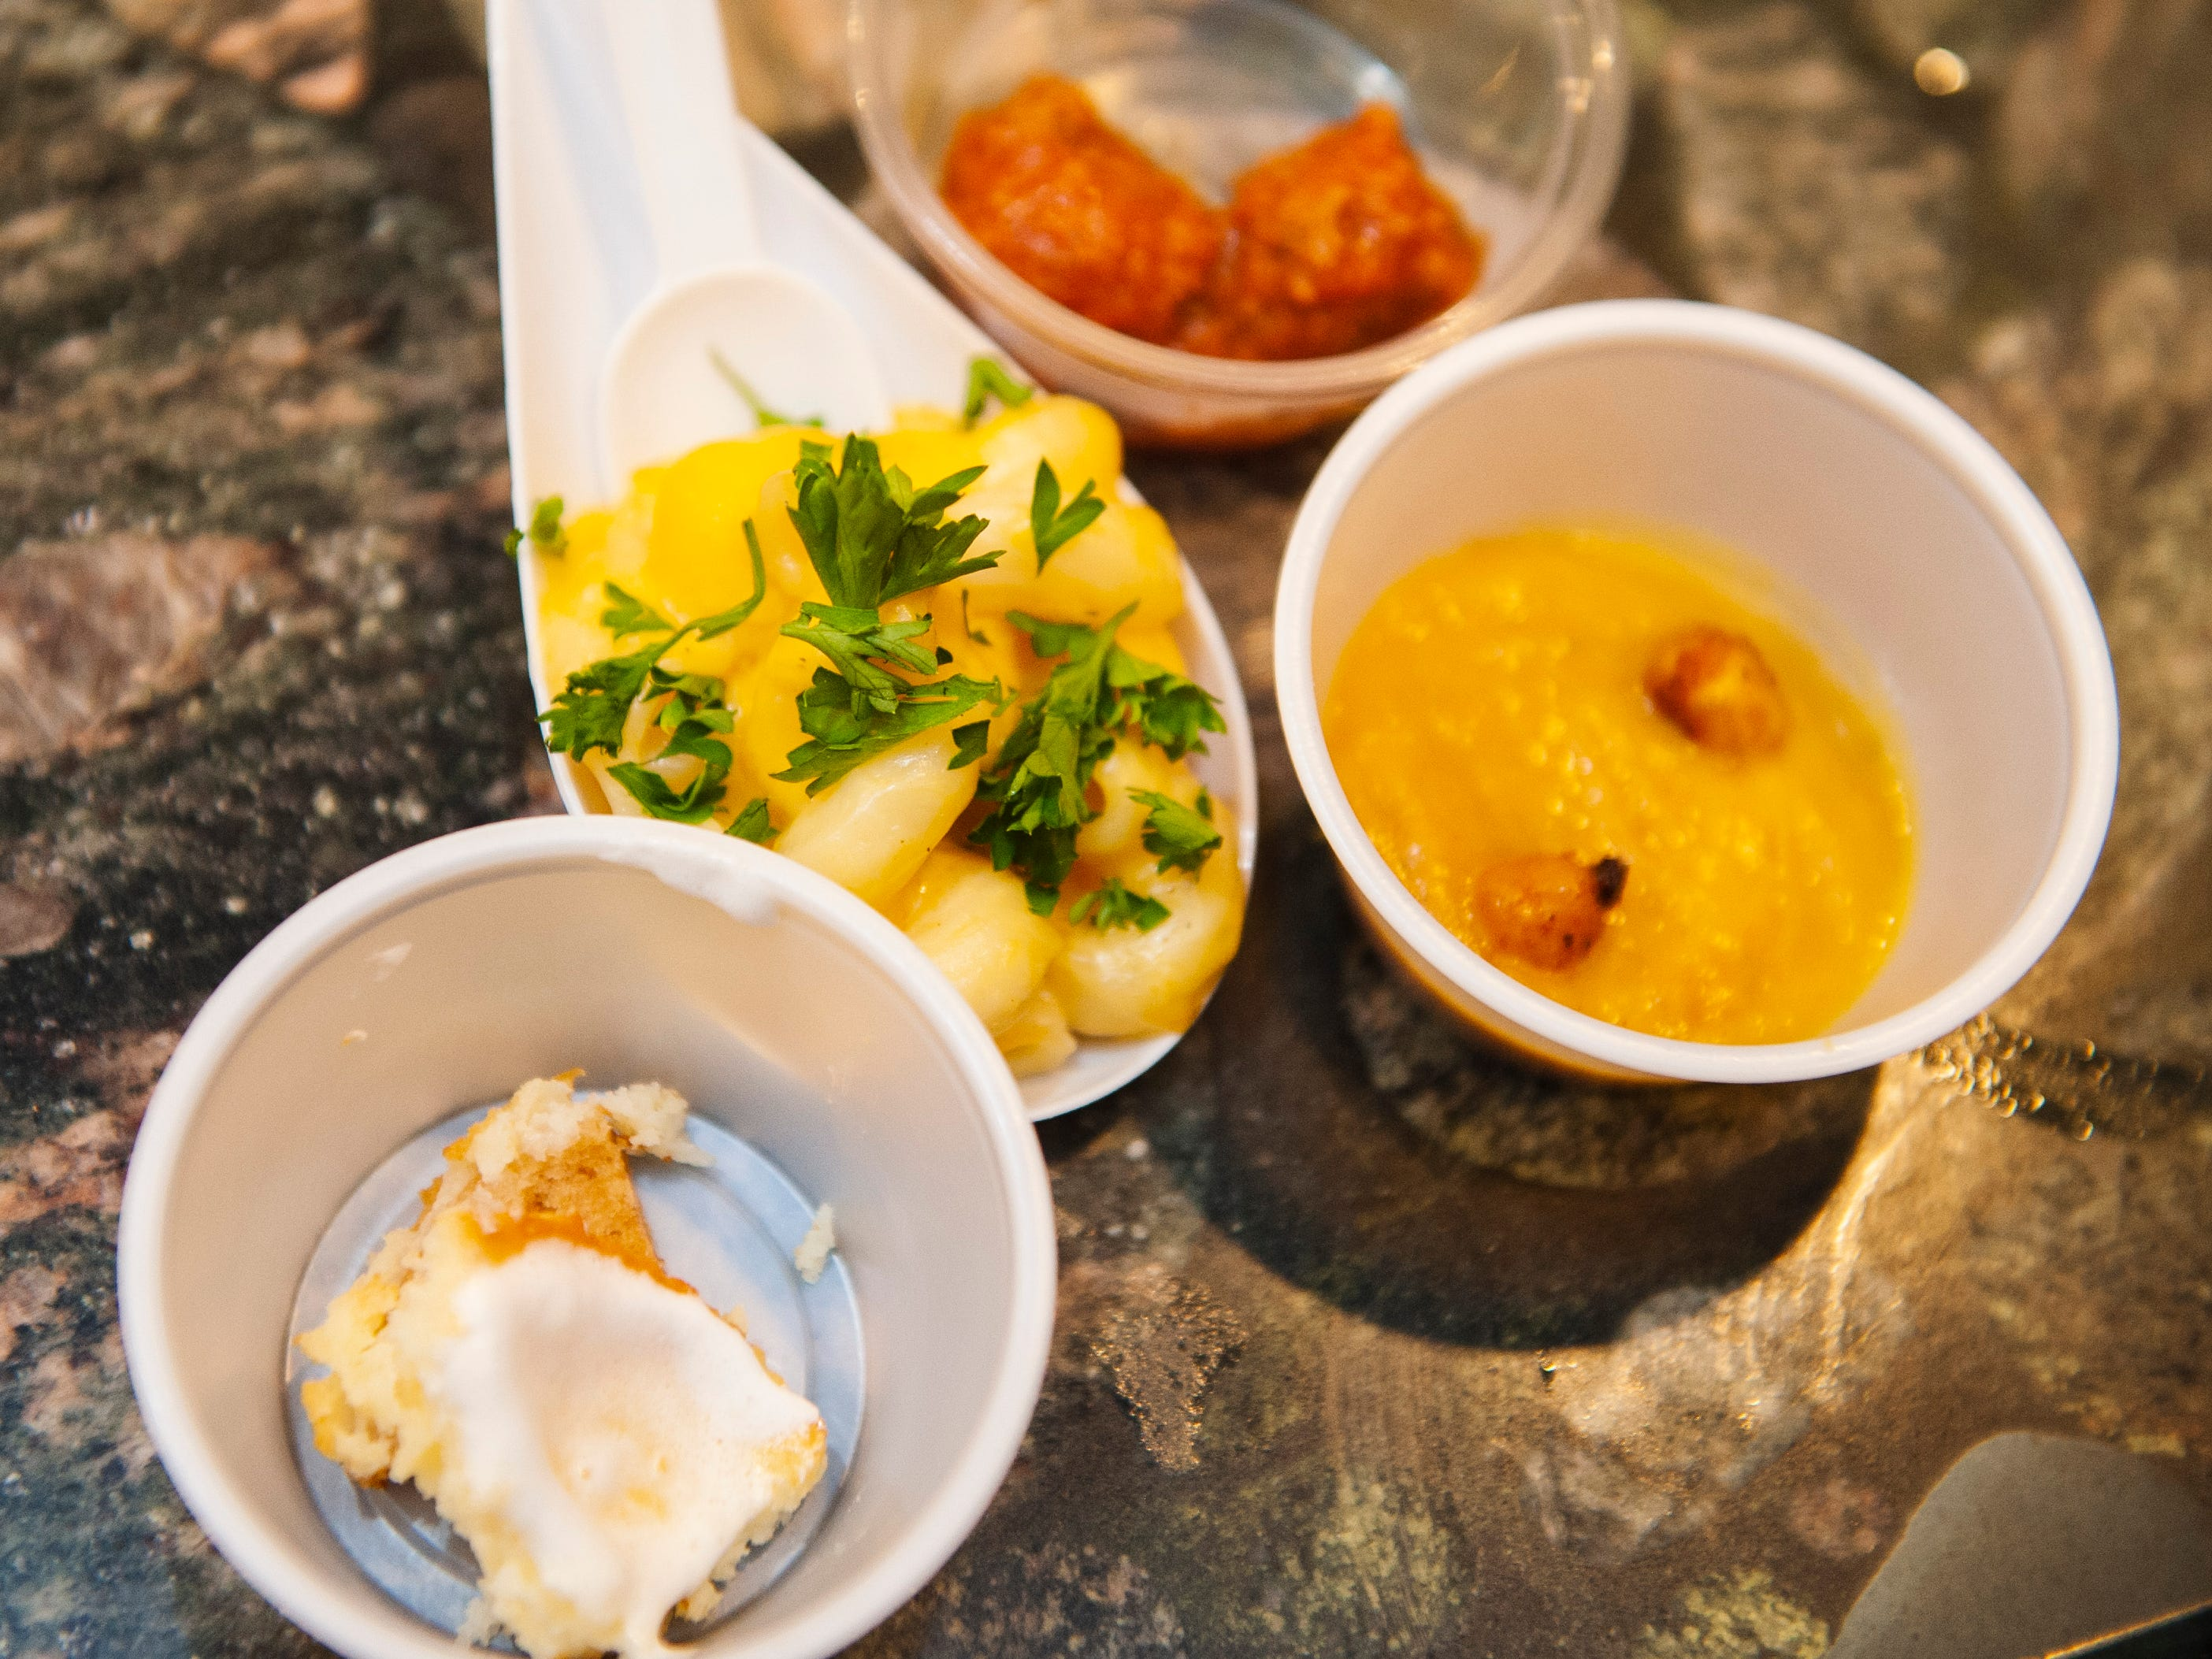 Free cannabis-infused food samples include, from left, cheesecake, macaroni and cheese, meatballs and butternut squash soup with roasted chipotle chick peas.